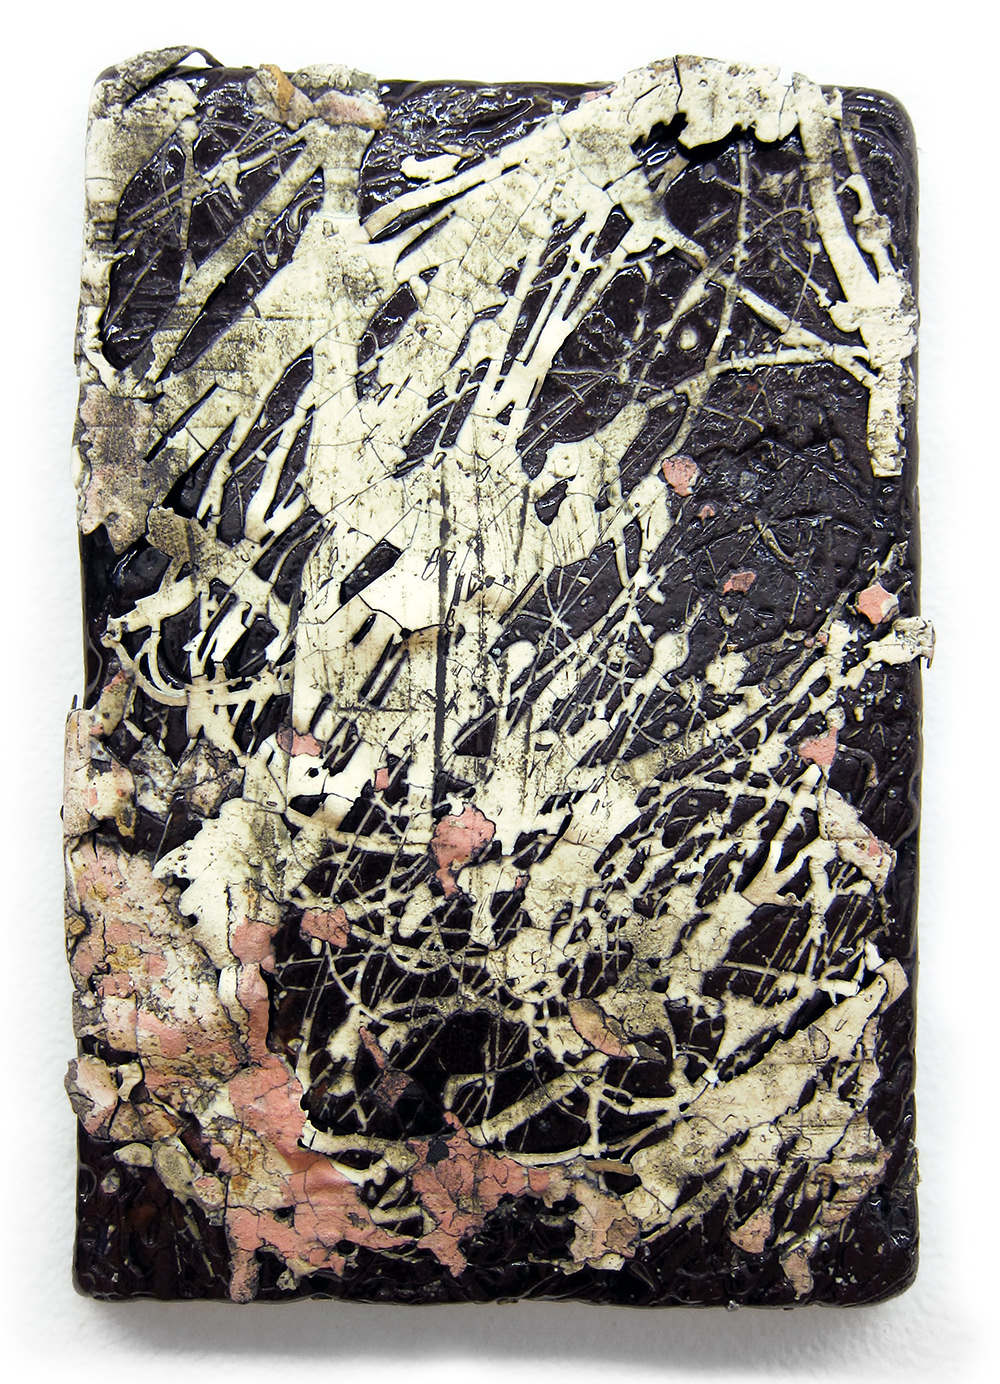 "<em>Small Traces Slab No.5</em> <span style=""color:#CC0000;font-size:1.5em;"">•</span>"